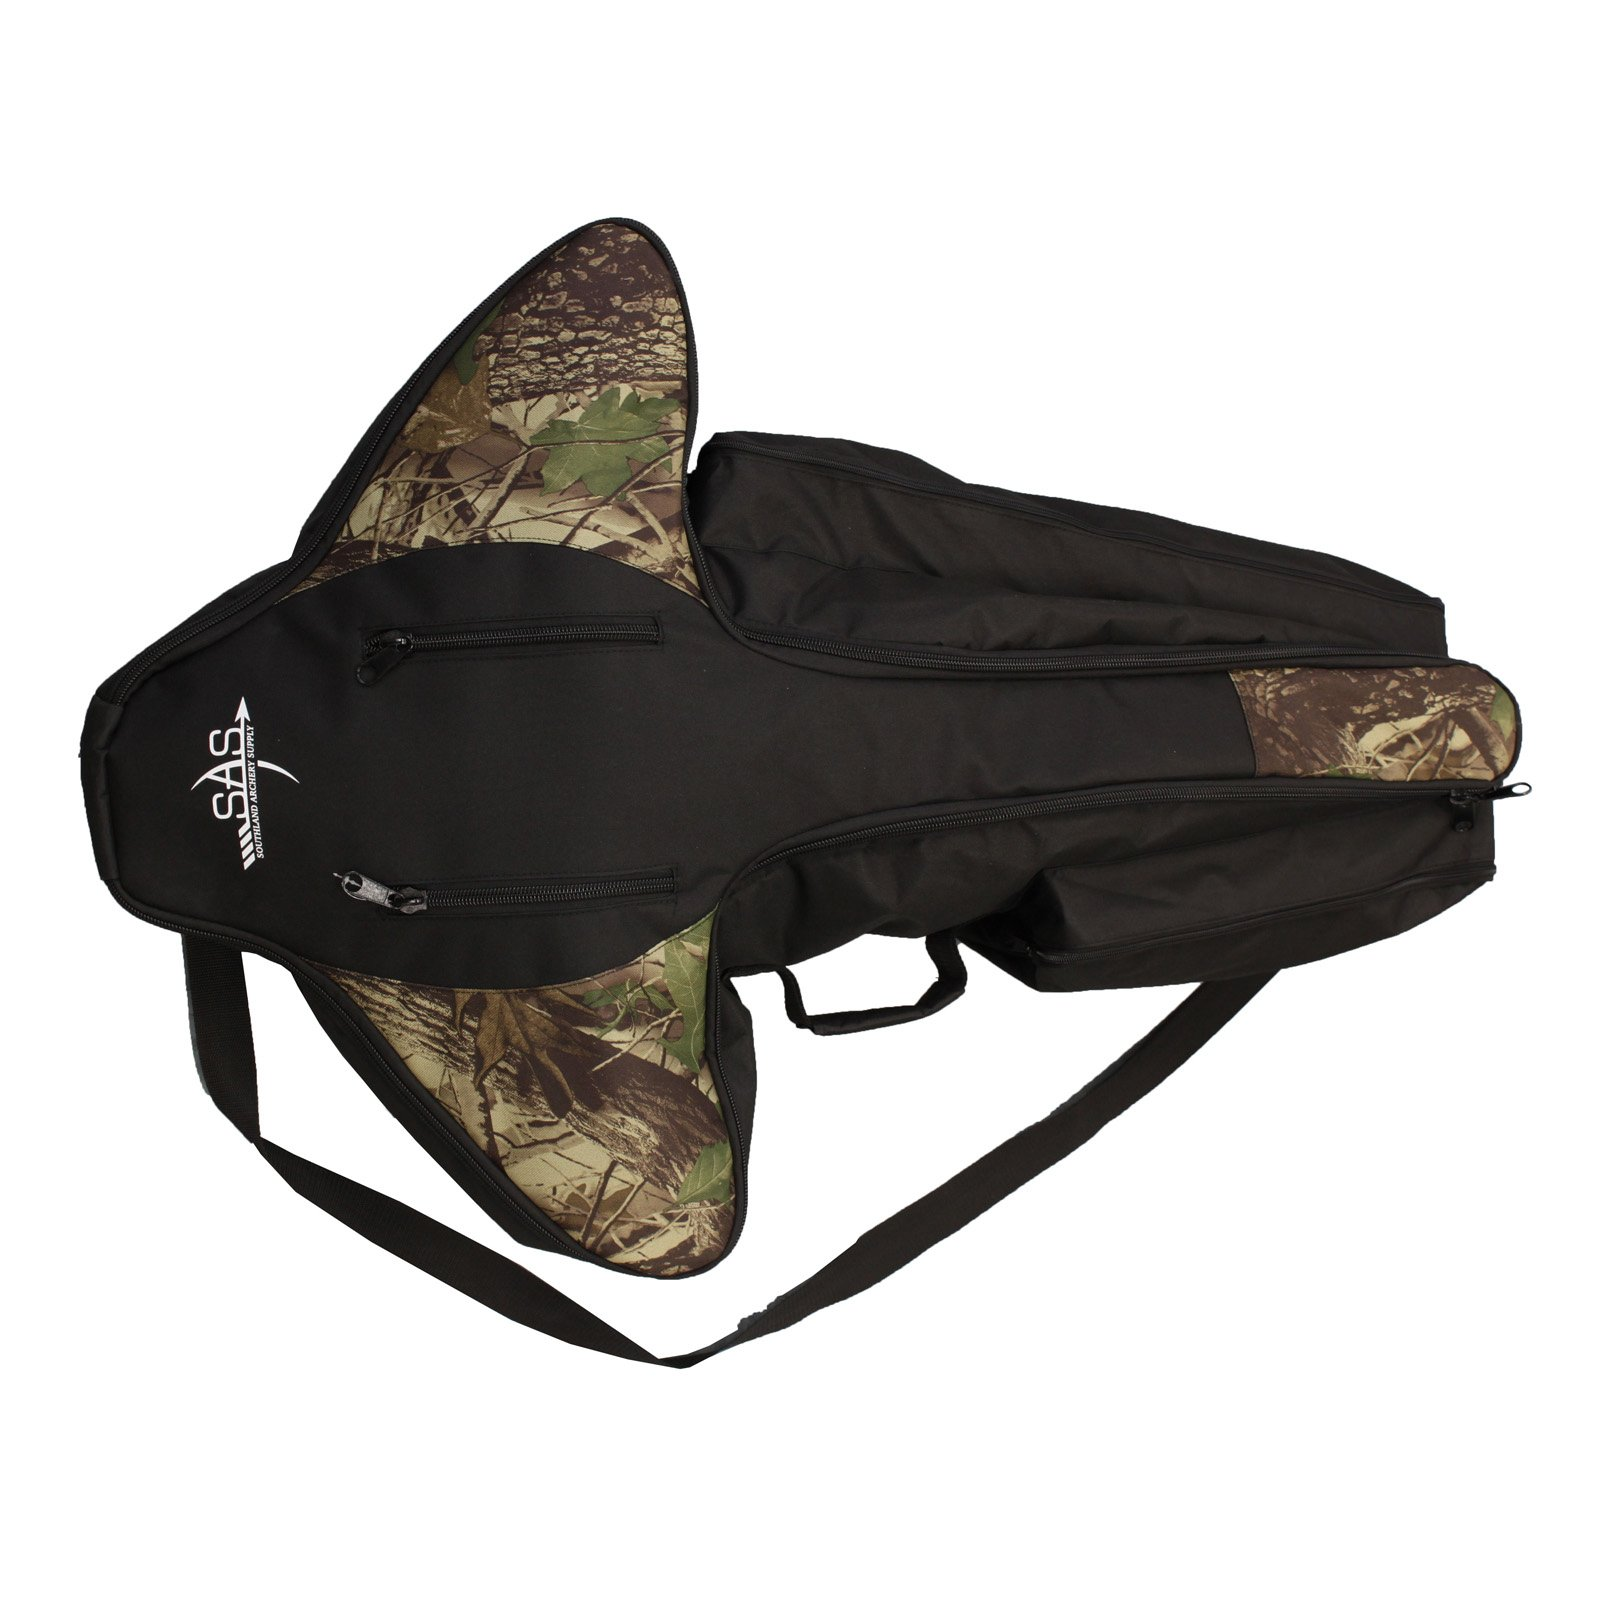 SAS Deluxe Compact Padded Soft Crossbow Case with Sling and Extra Compartments